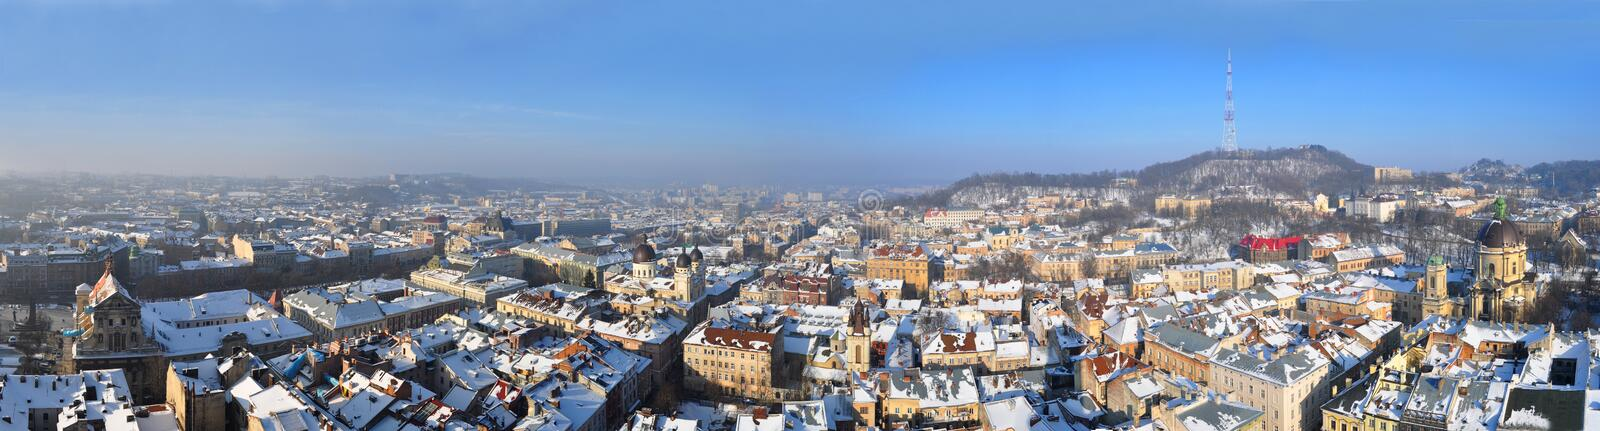 Download Panorama Of The Lviv Stock Images - Image: 18982524